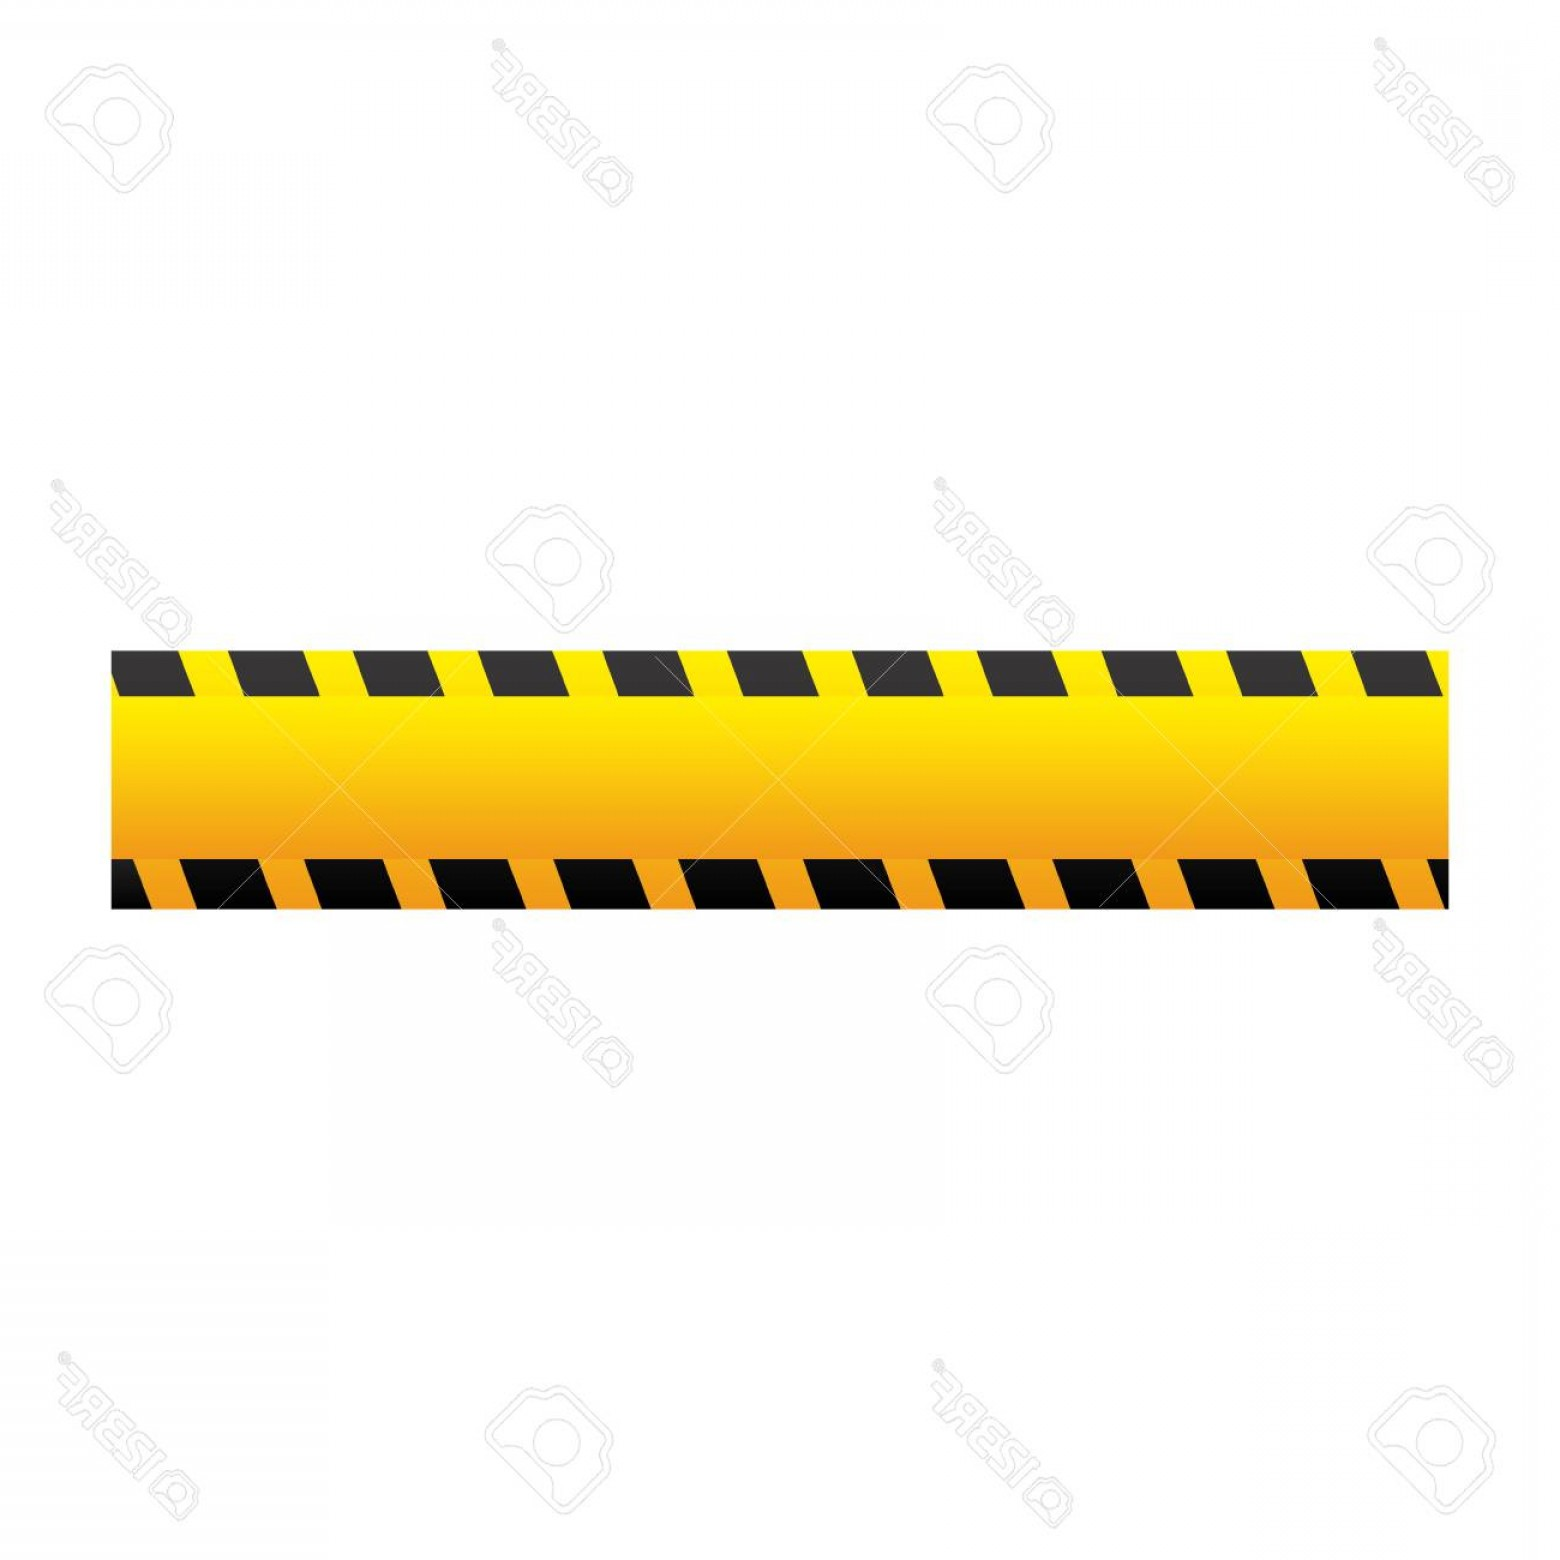 Caution Stripes Vector: Photostock Vector Yellow Caution Tape Icon Vector Illustraction Design Image